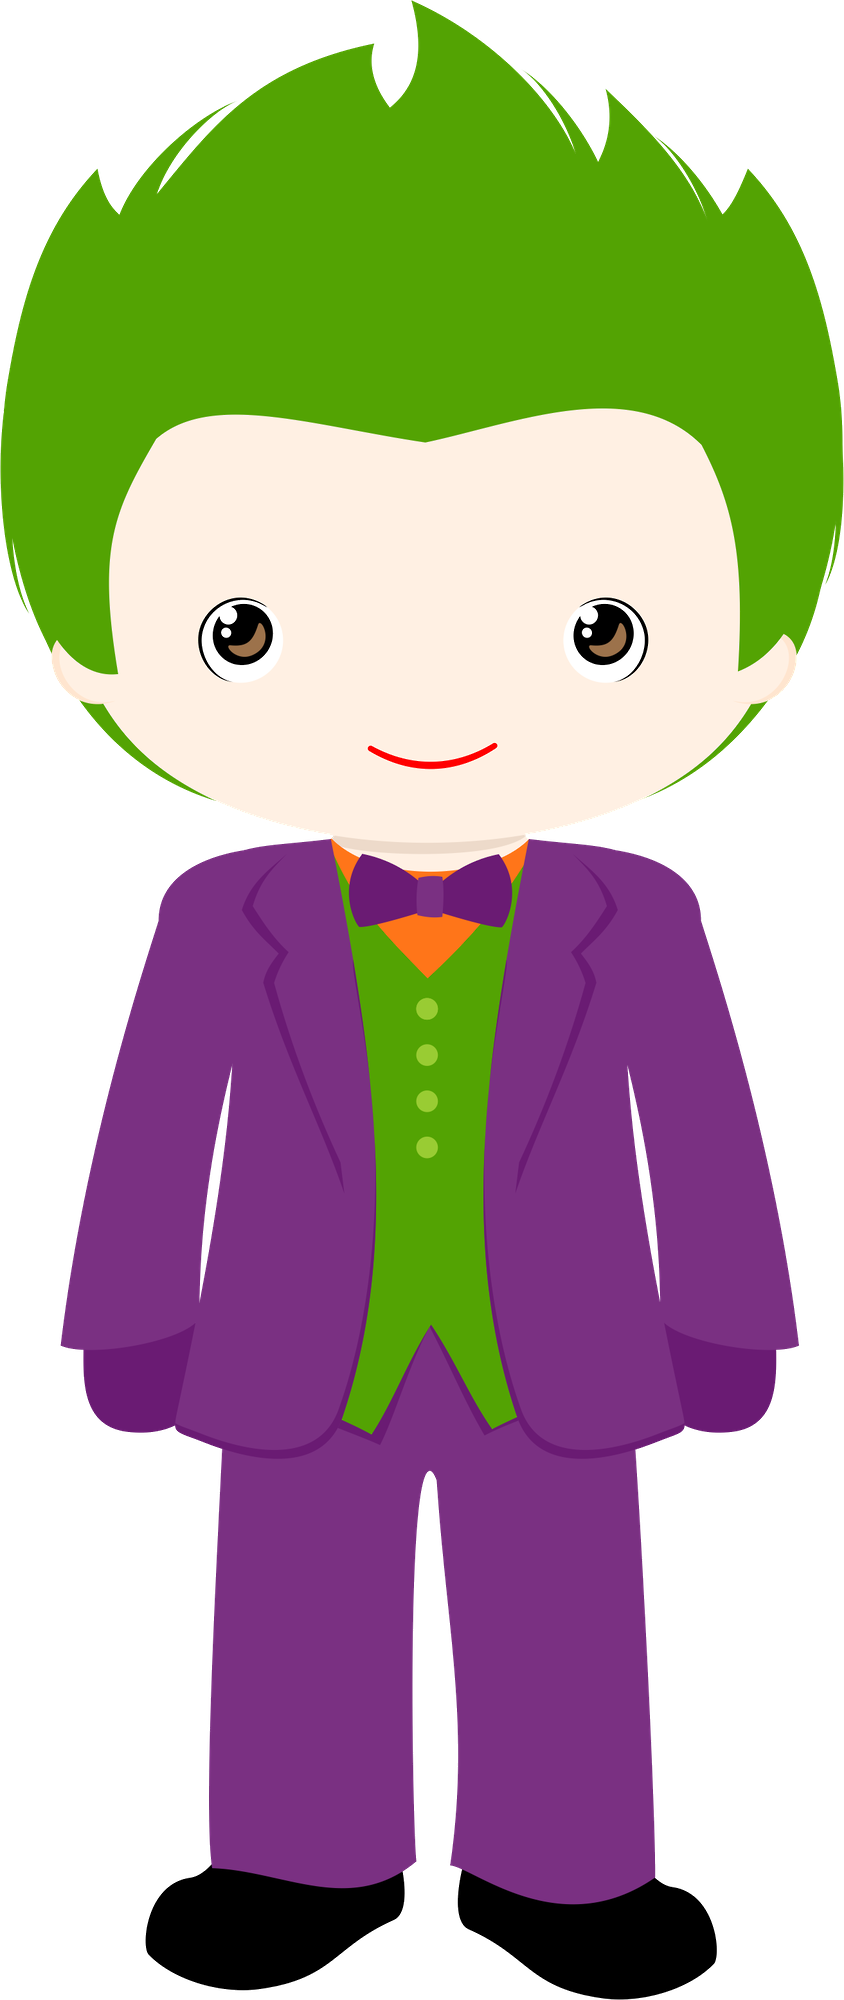 844x2000 The Joker Cute Images Cute Images By